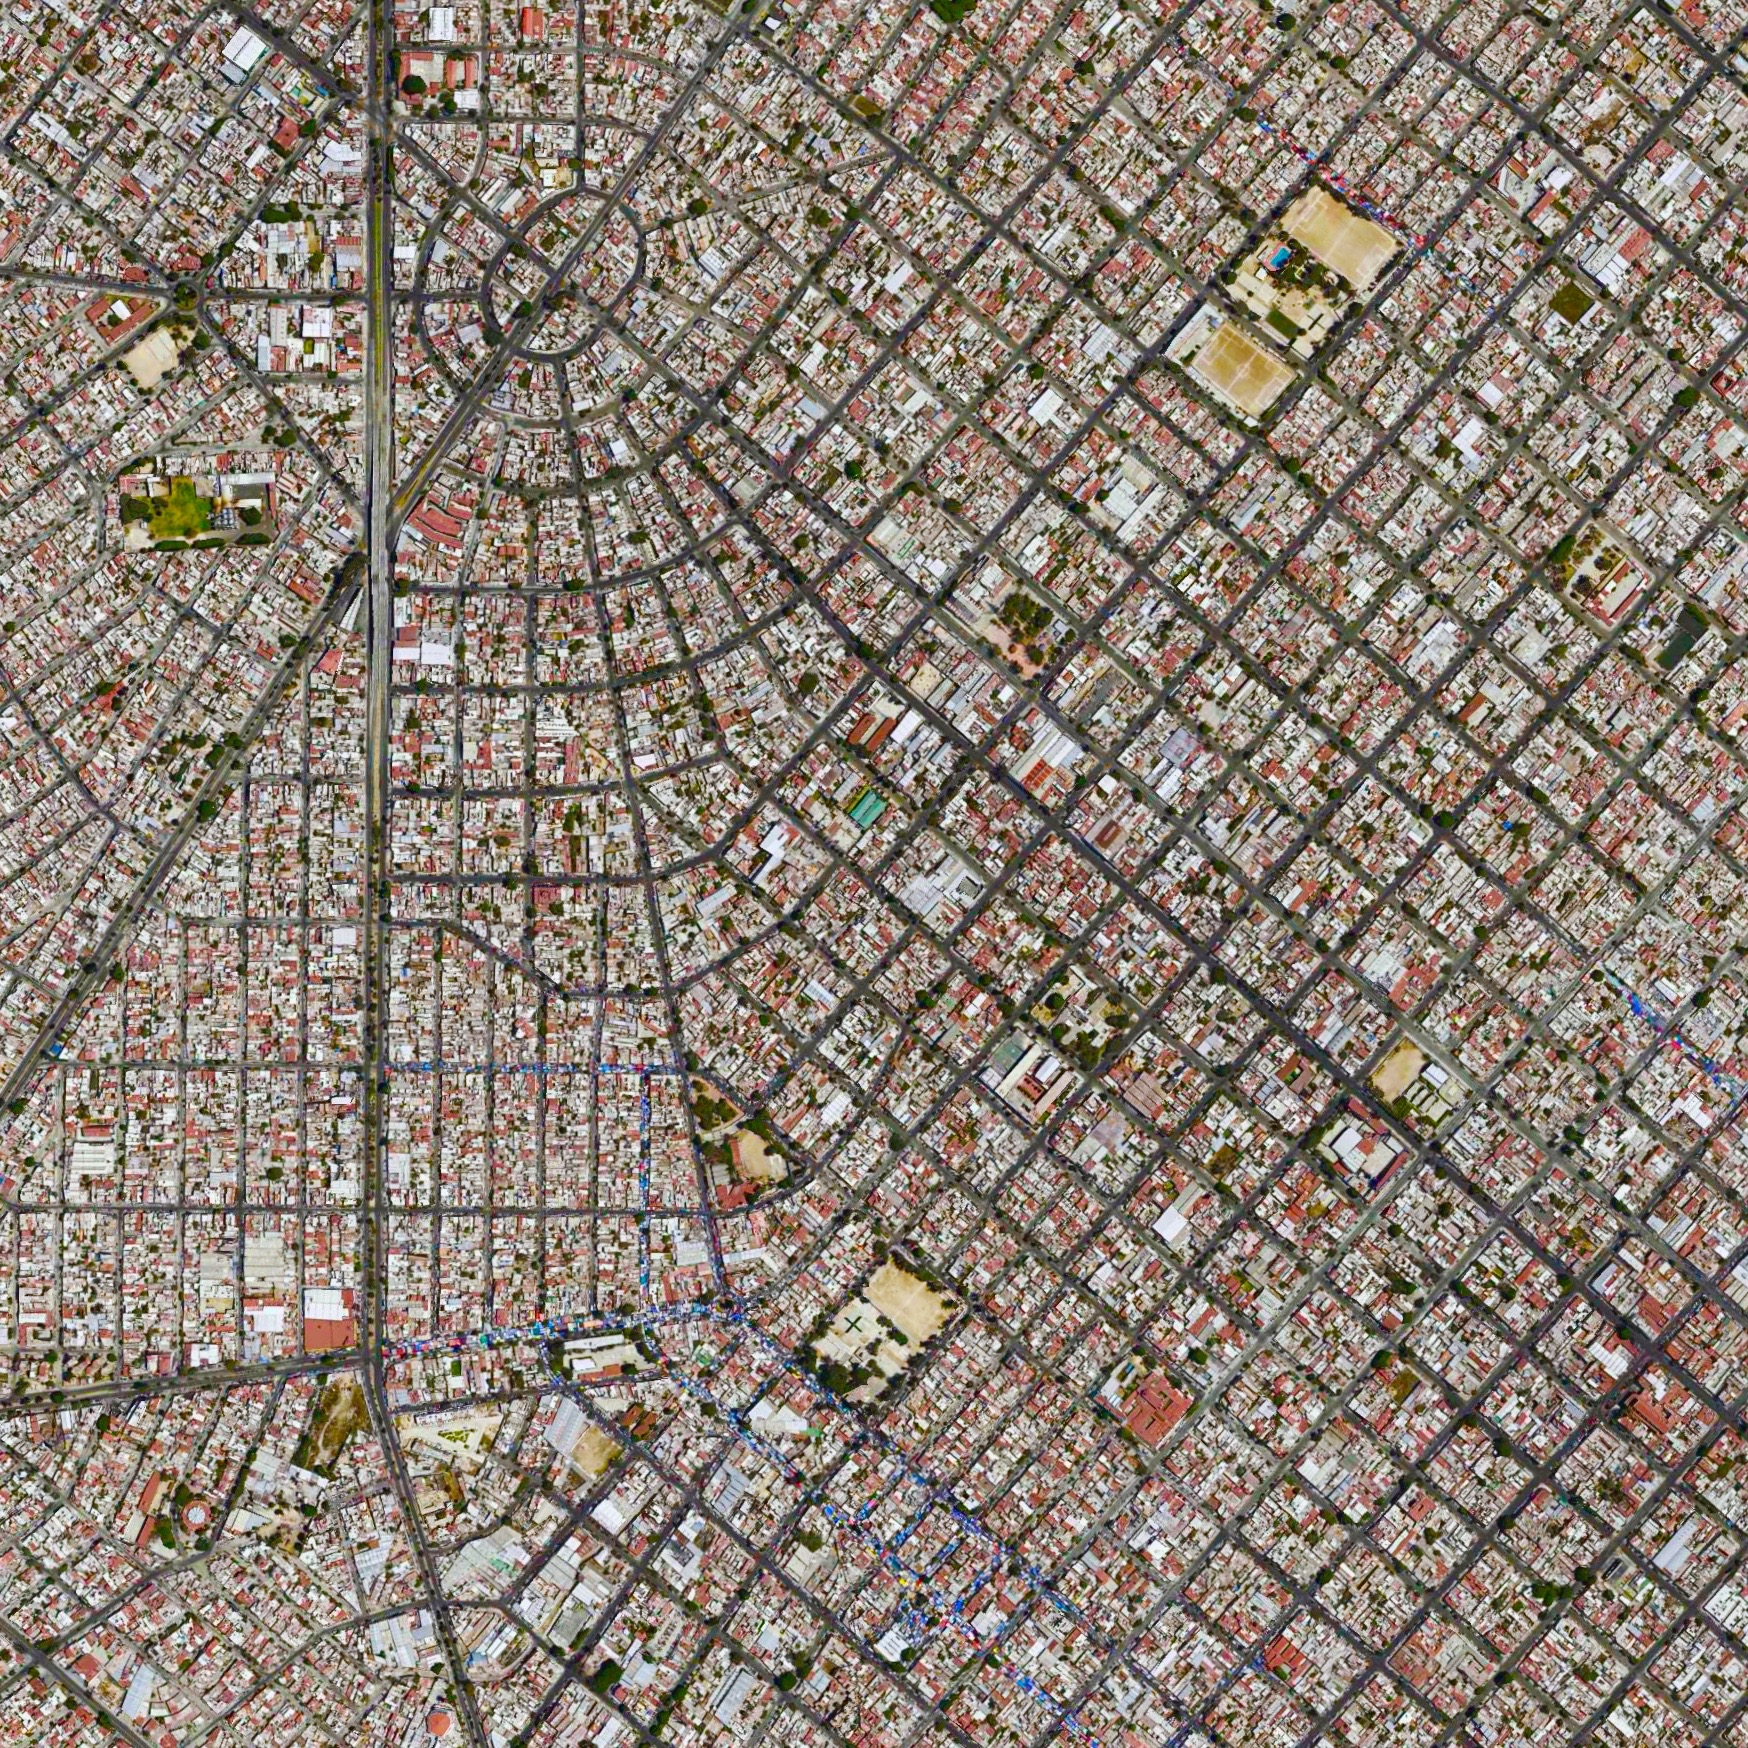 8/1/2015   Guadalajara    Guadalajara, Mexico   20.687579999°, -103.307078268°    Guadalajara is the fourth most populous city in Mexico with a population of nearly 1.5 million. It is also one of the country's cultural centers, considered by many to be the home of mariachi music.